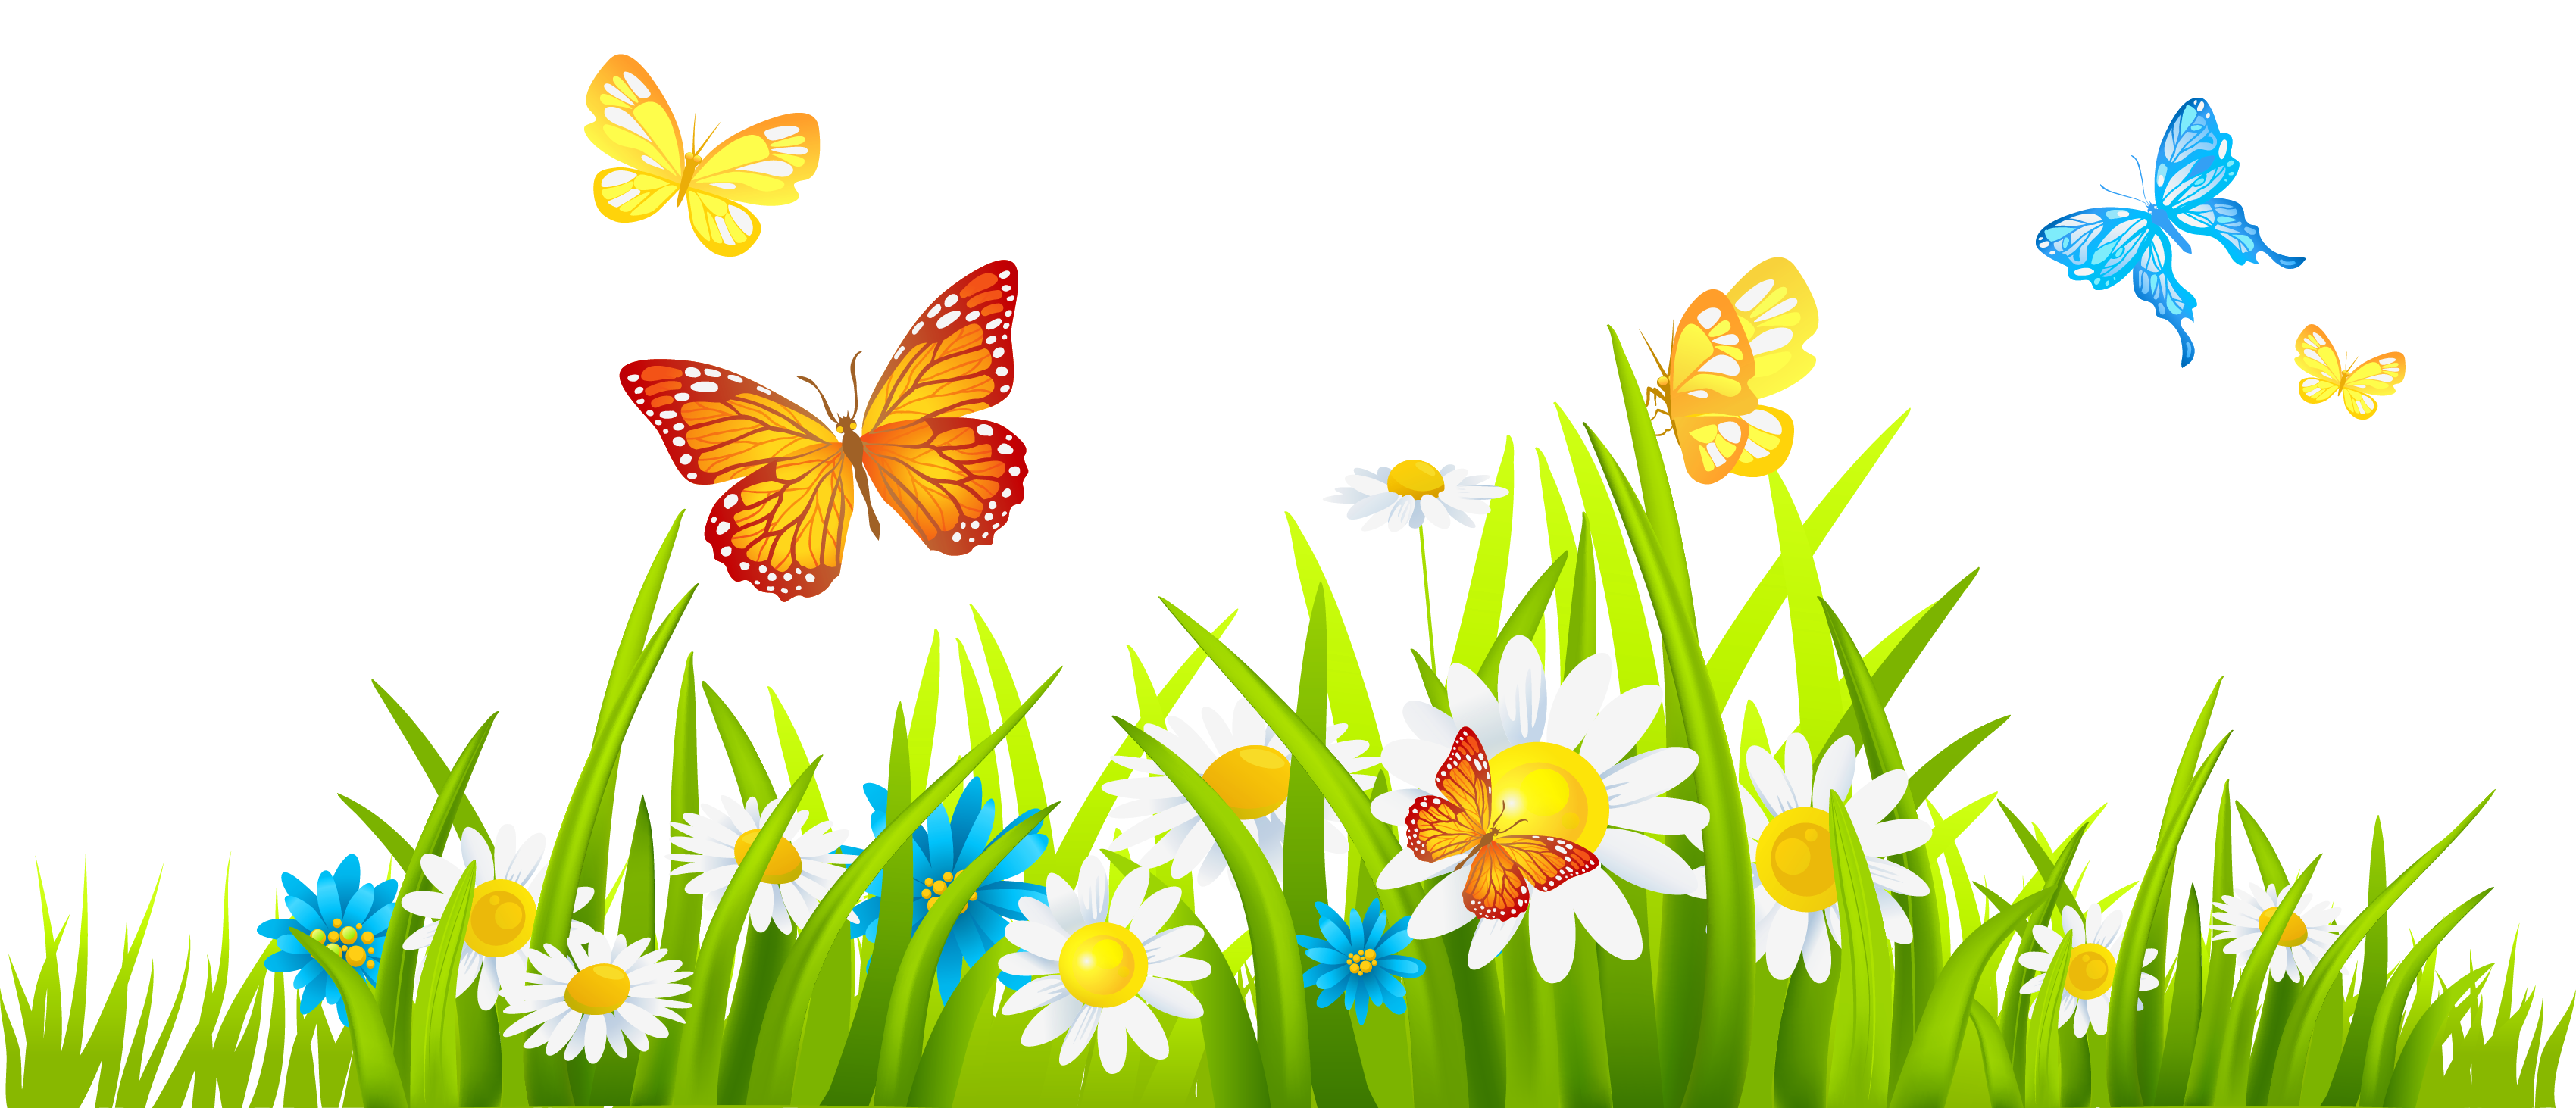 3400x1463 Collection Of Free Spring Vector Background. Download On Ubisafe